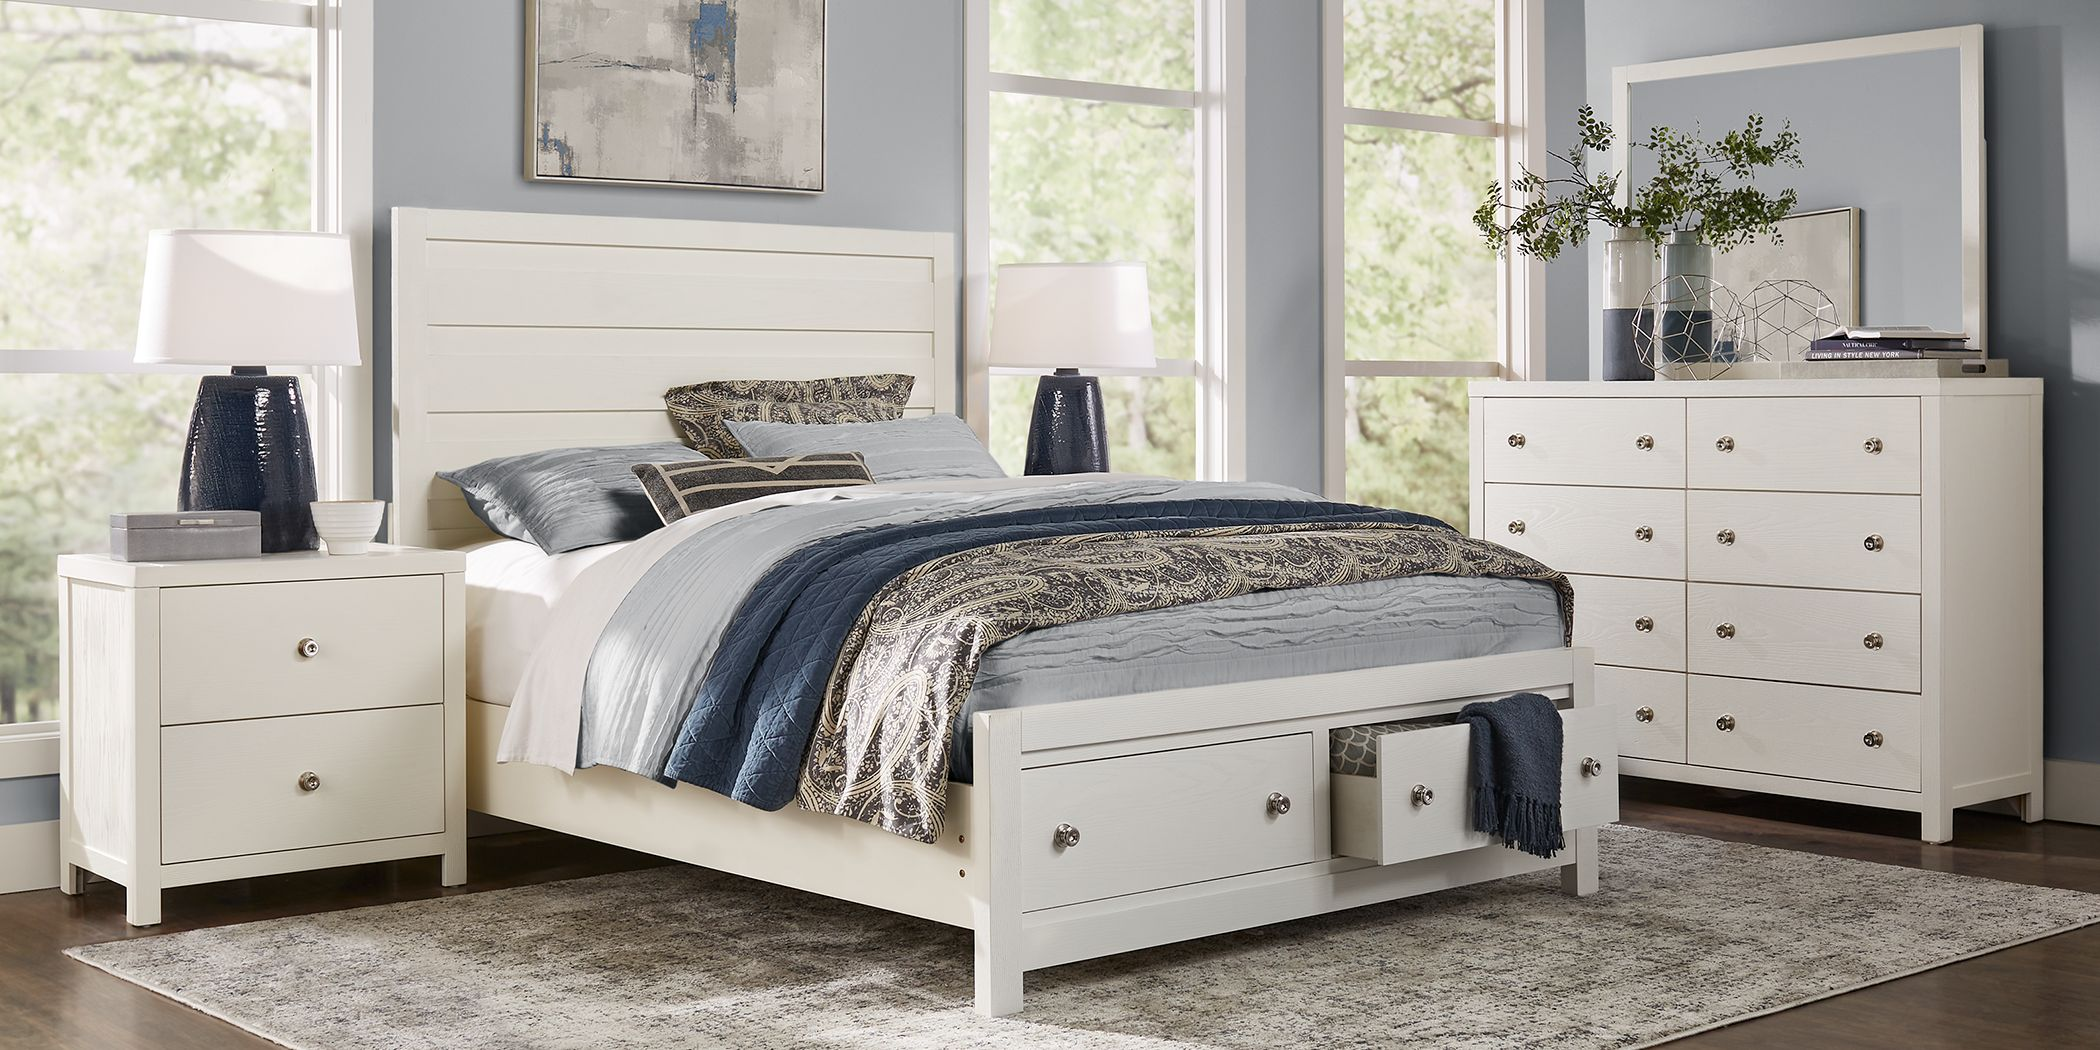 barringer-place-white-7-pc-queen-panel-bedroom-with-storage